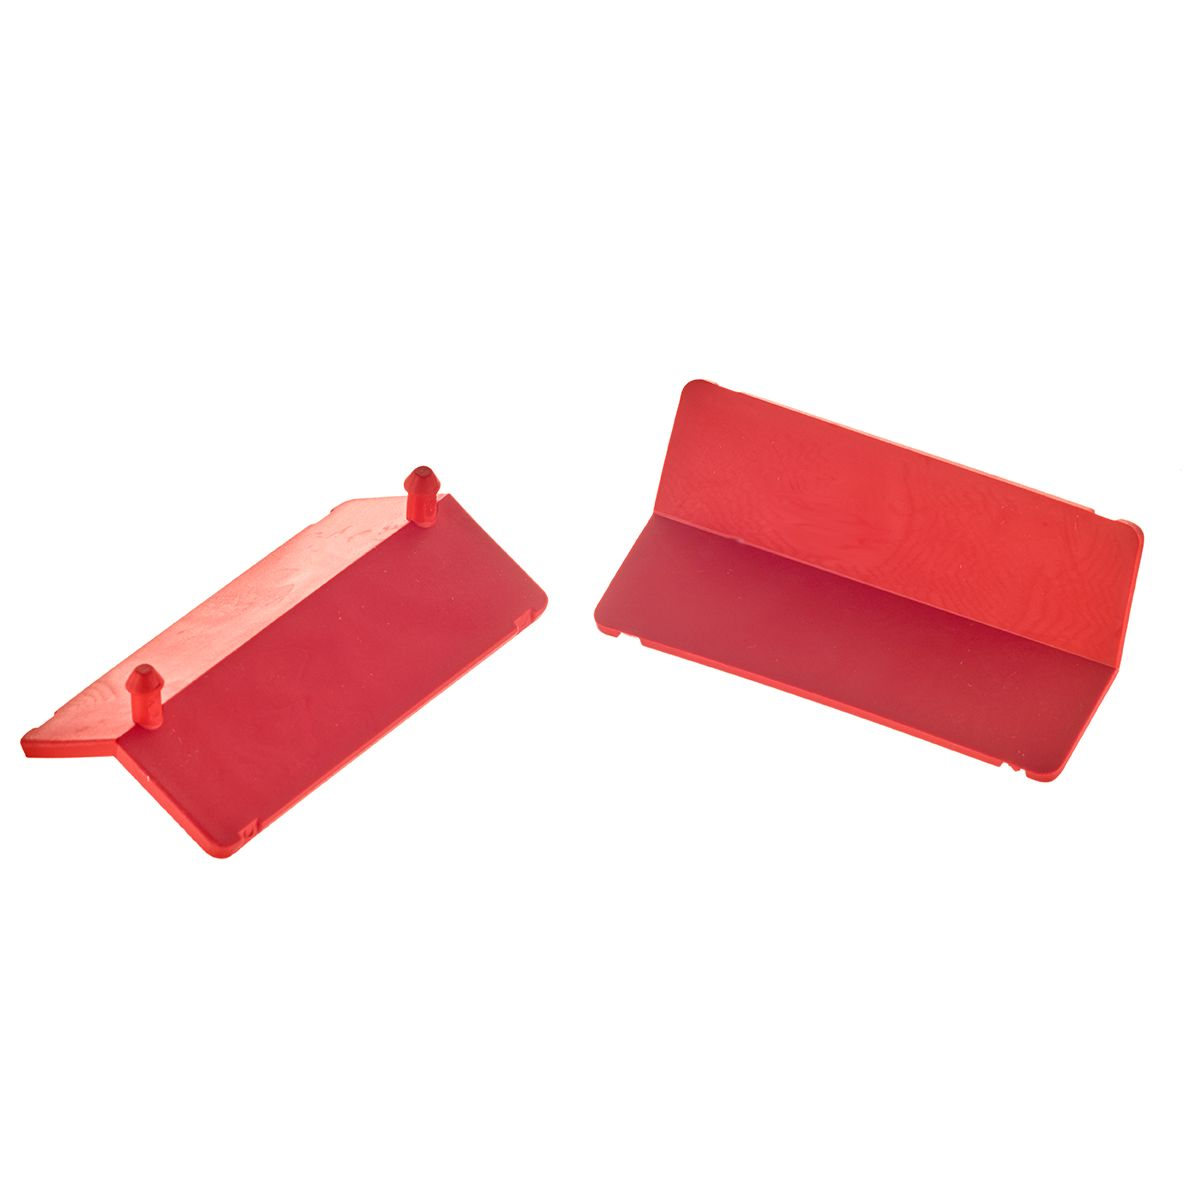 Spare rubber strips for the clamp of S 3000/1300/900 workstands